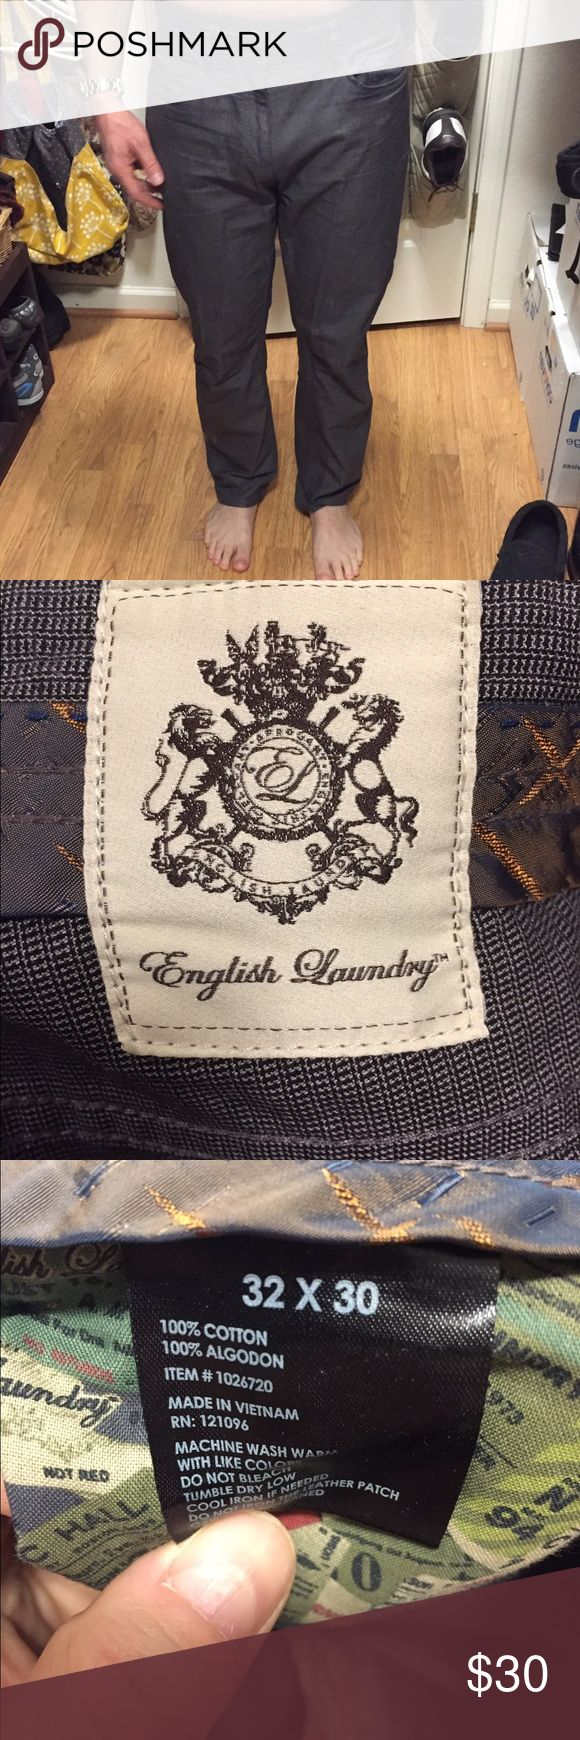 English laundry chino 32x30 Like new, 32x30, grey chino pant English Laundry Pants Chinos & Khakis